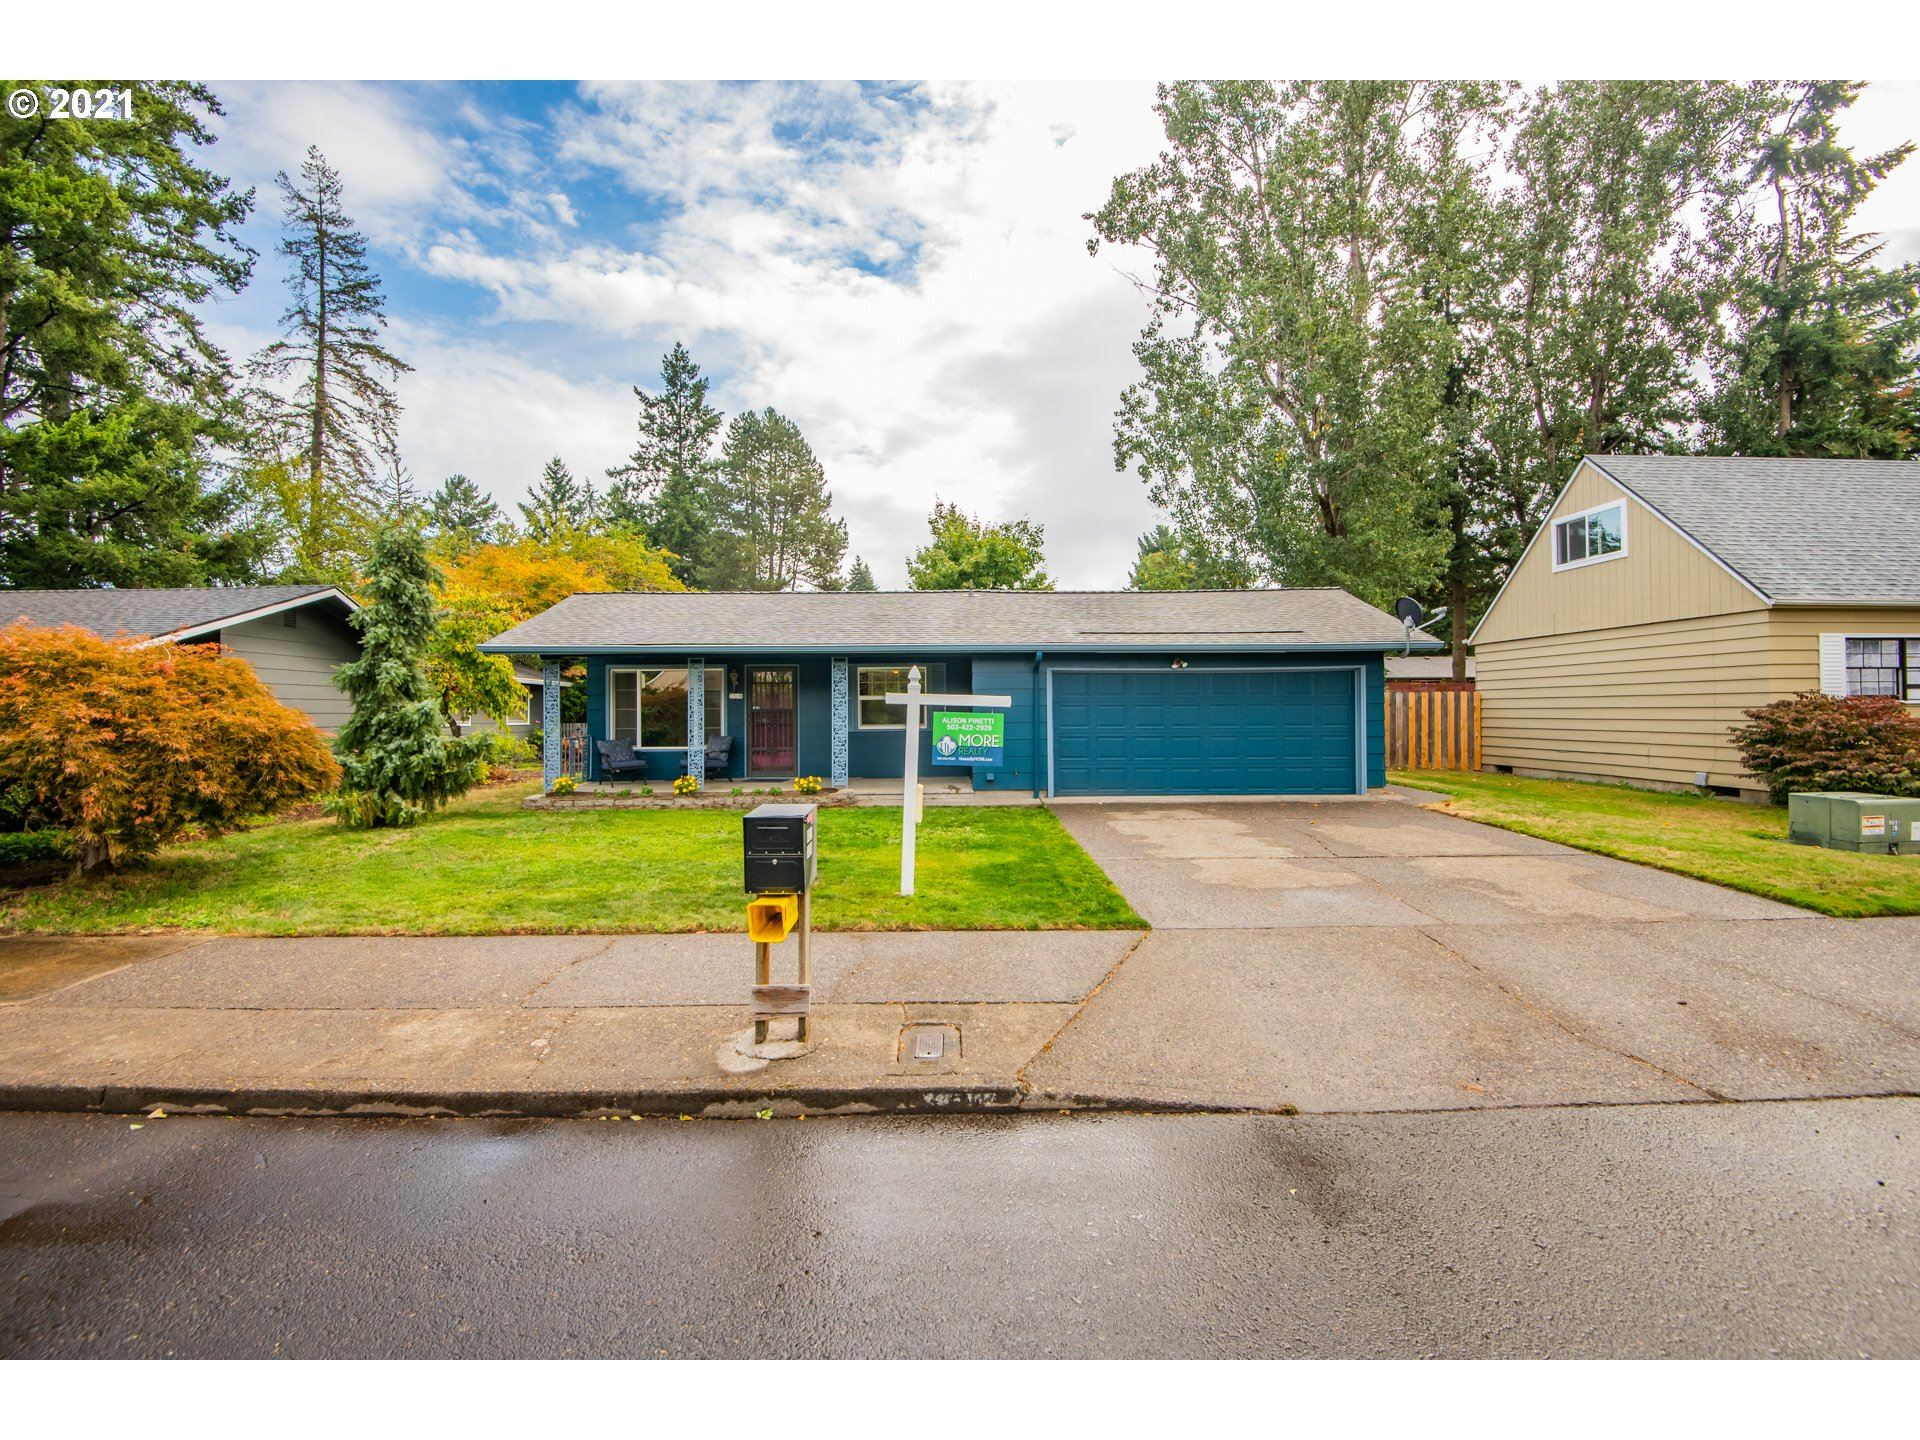 3308 SE 158TH AVE, Portland, OR 97236 - MLS#: 21062273